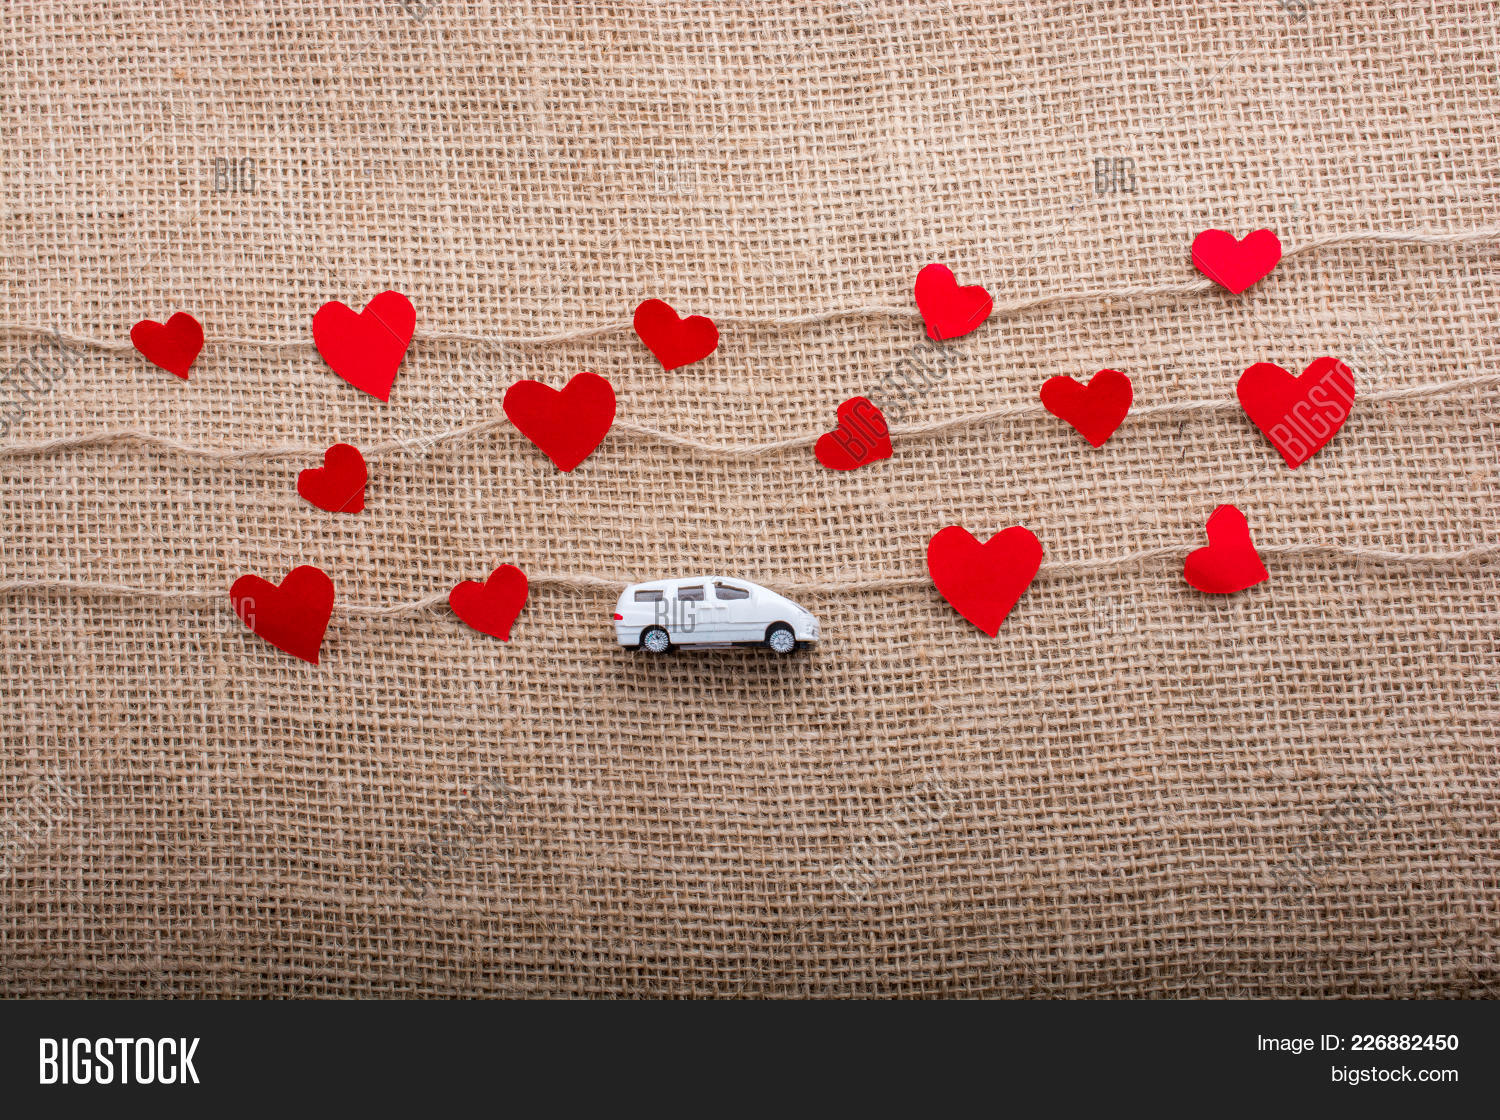 Love Concept With Car Powerpoint Template Love Concept With Car